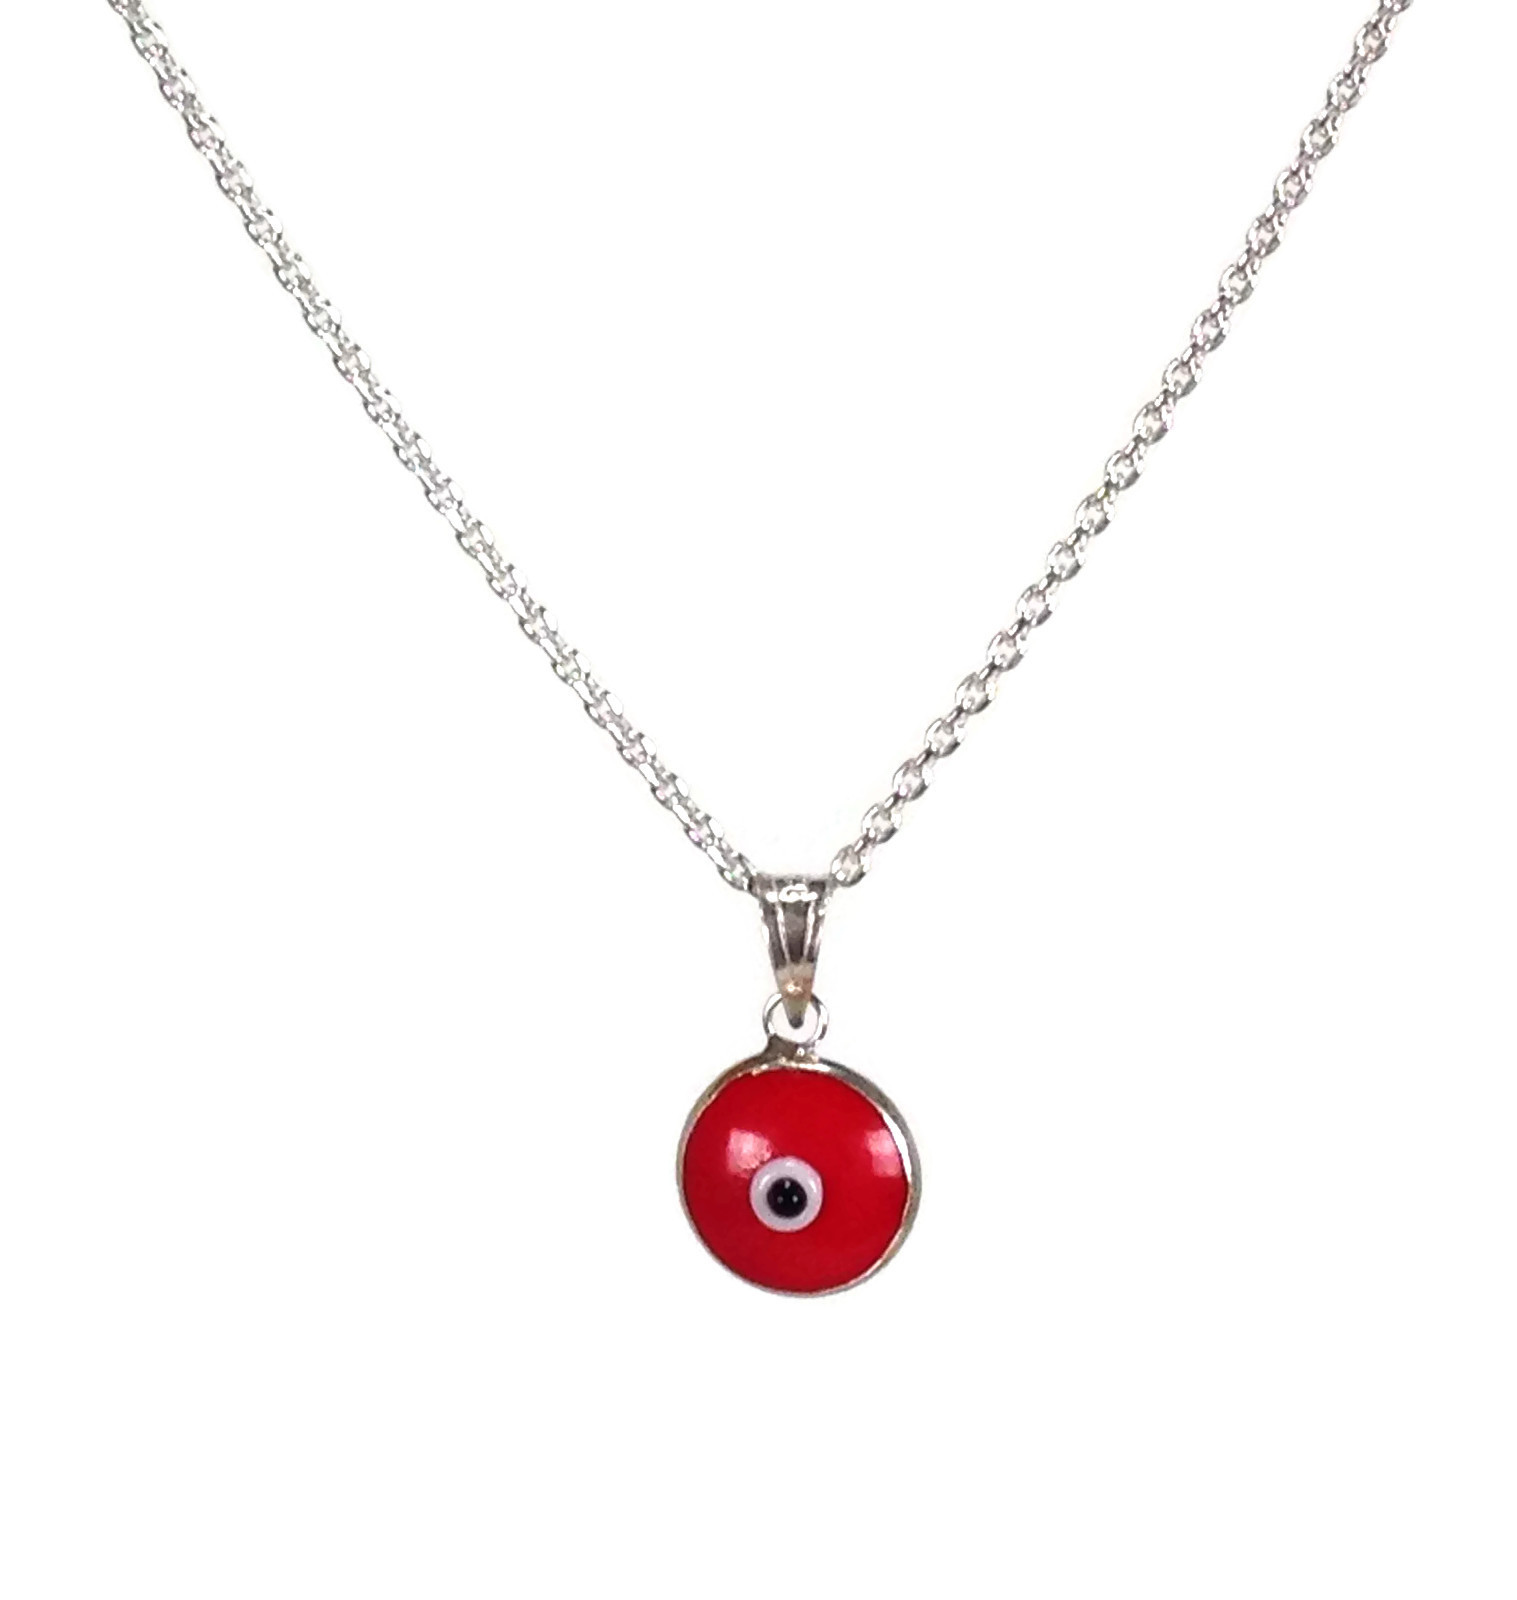 red evil eye pendant necklace